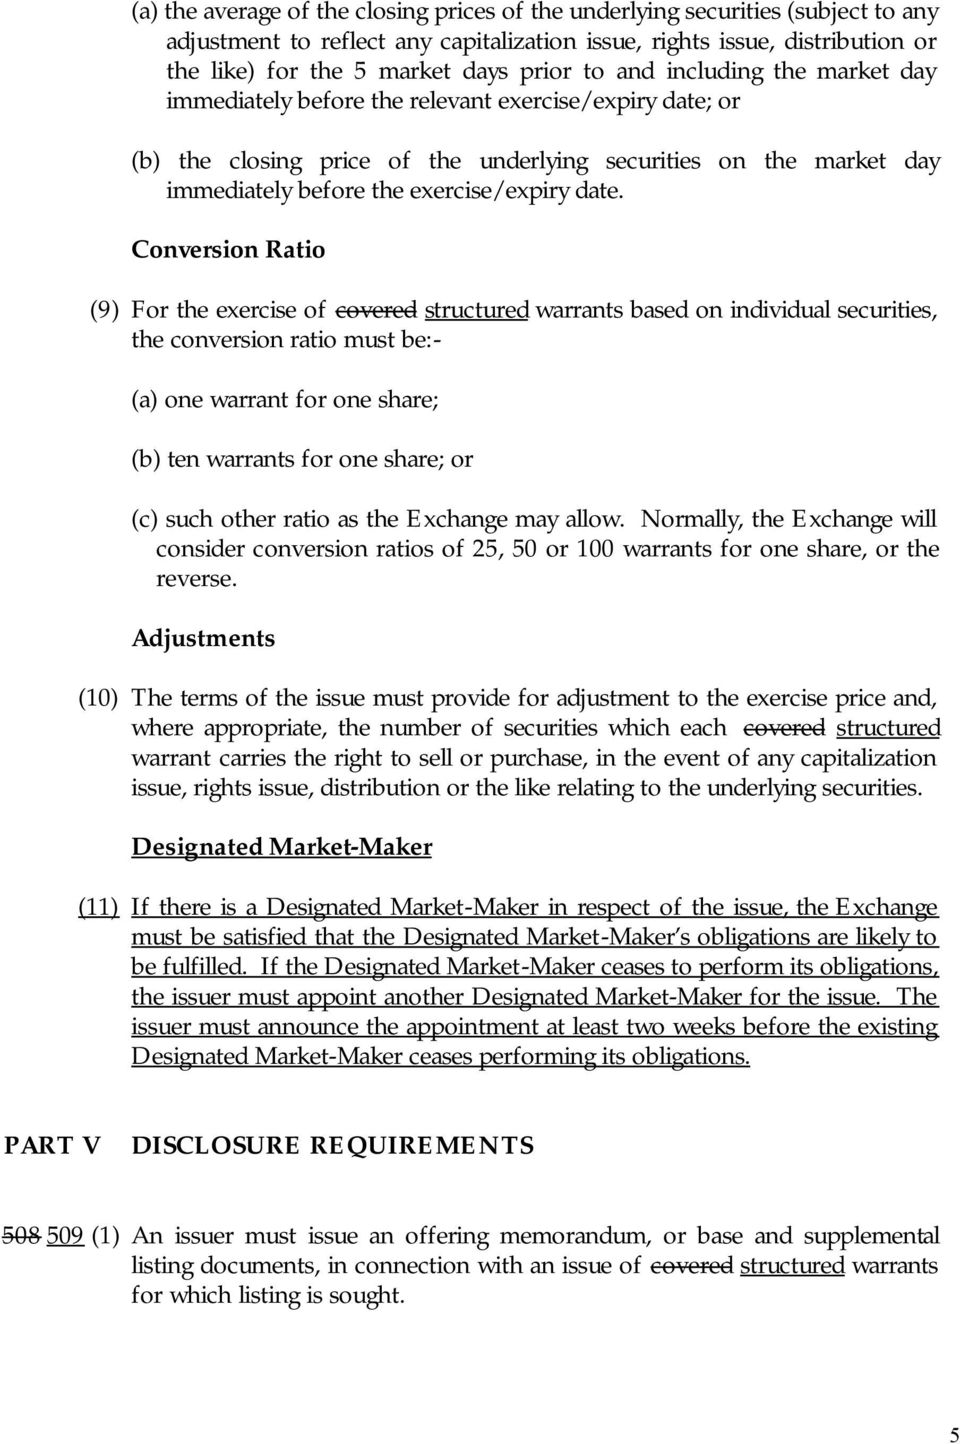 date. Conversion Ratio (9) For the exercise of covered structured warrants based on individual securities, the conversion ratio must be:- (a) one warrant for one share; (b) ten warrants for one